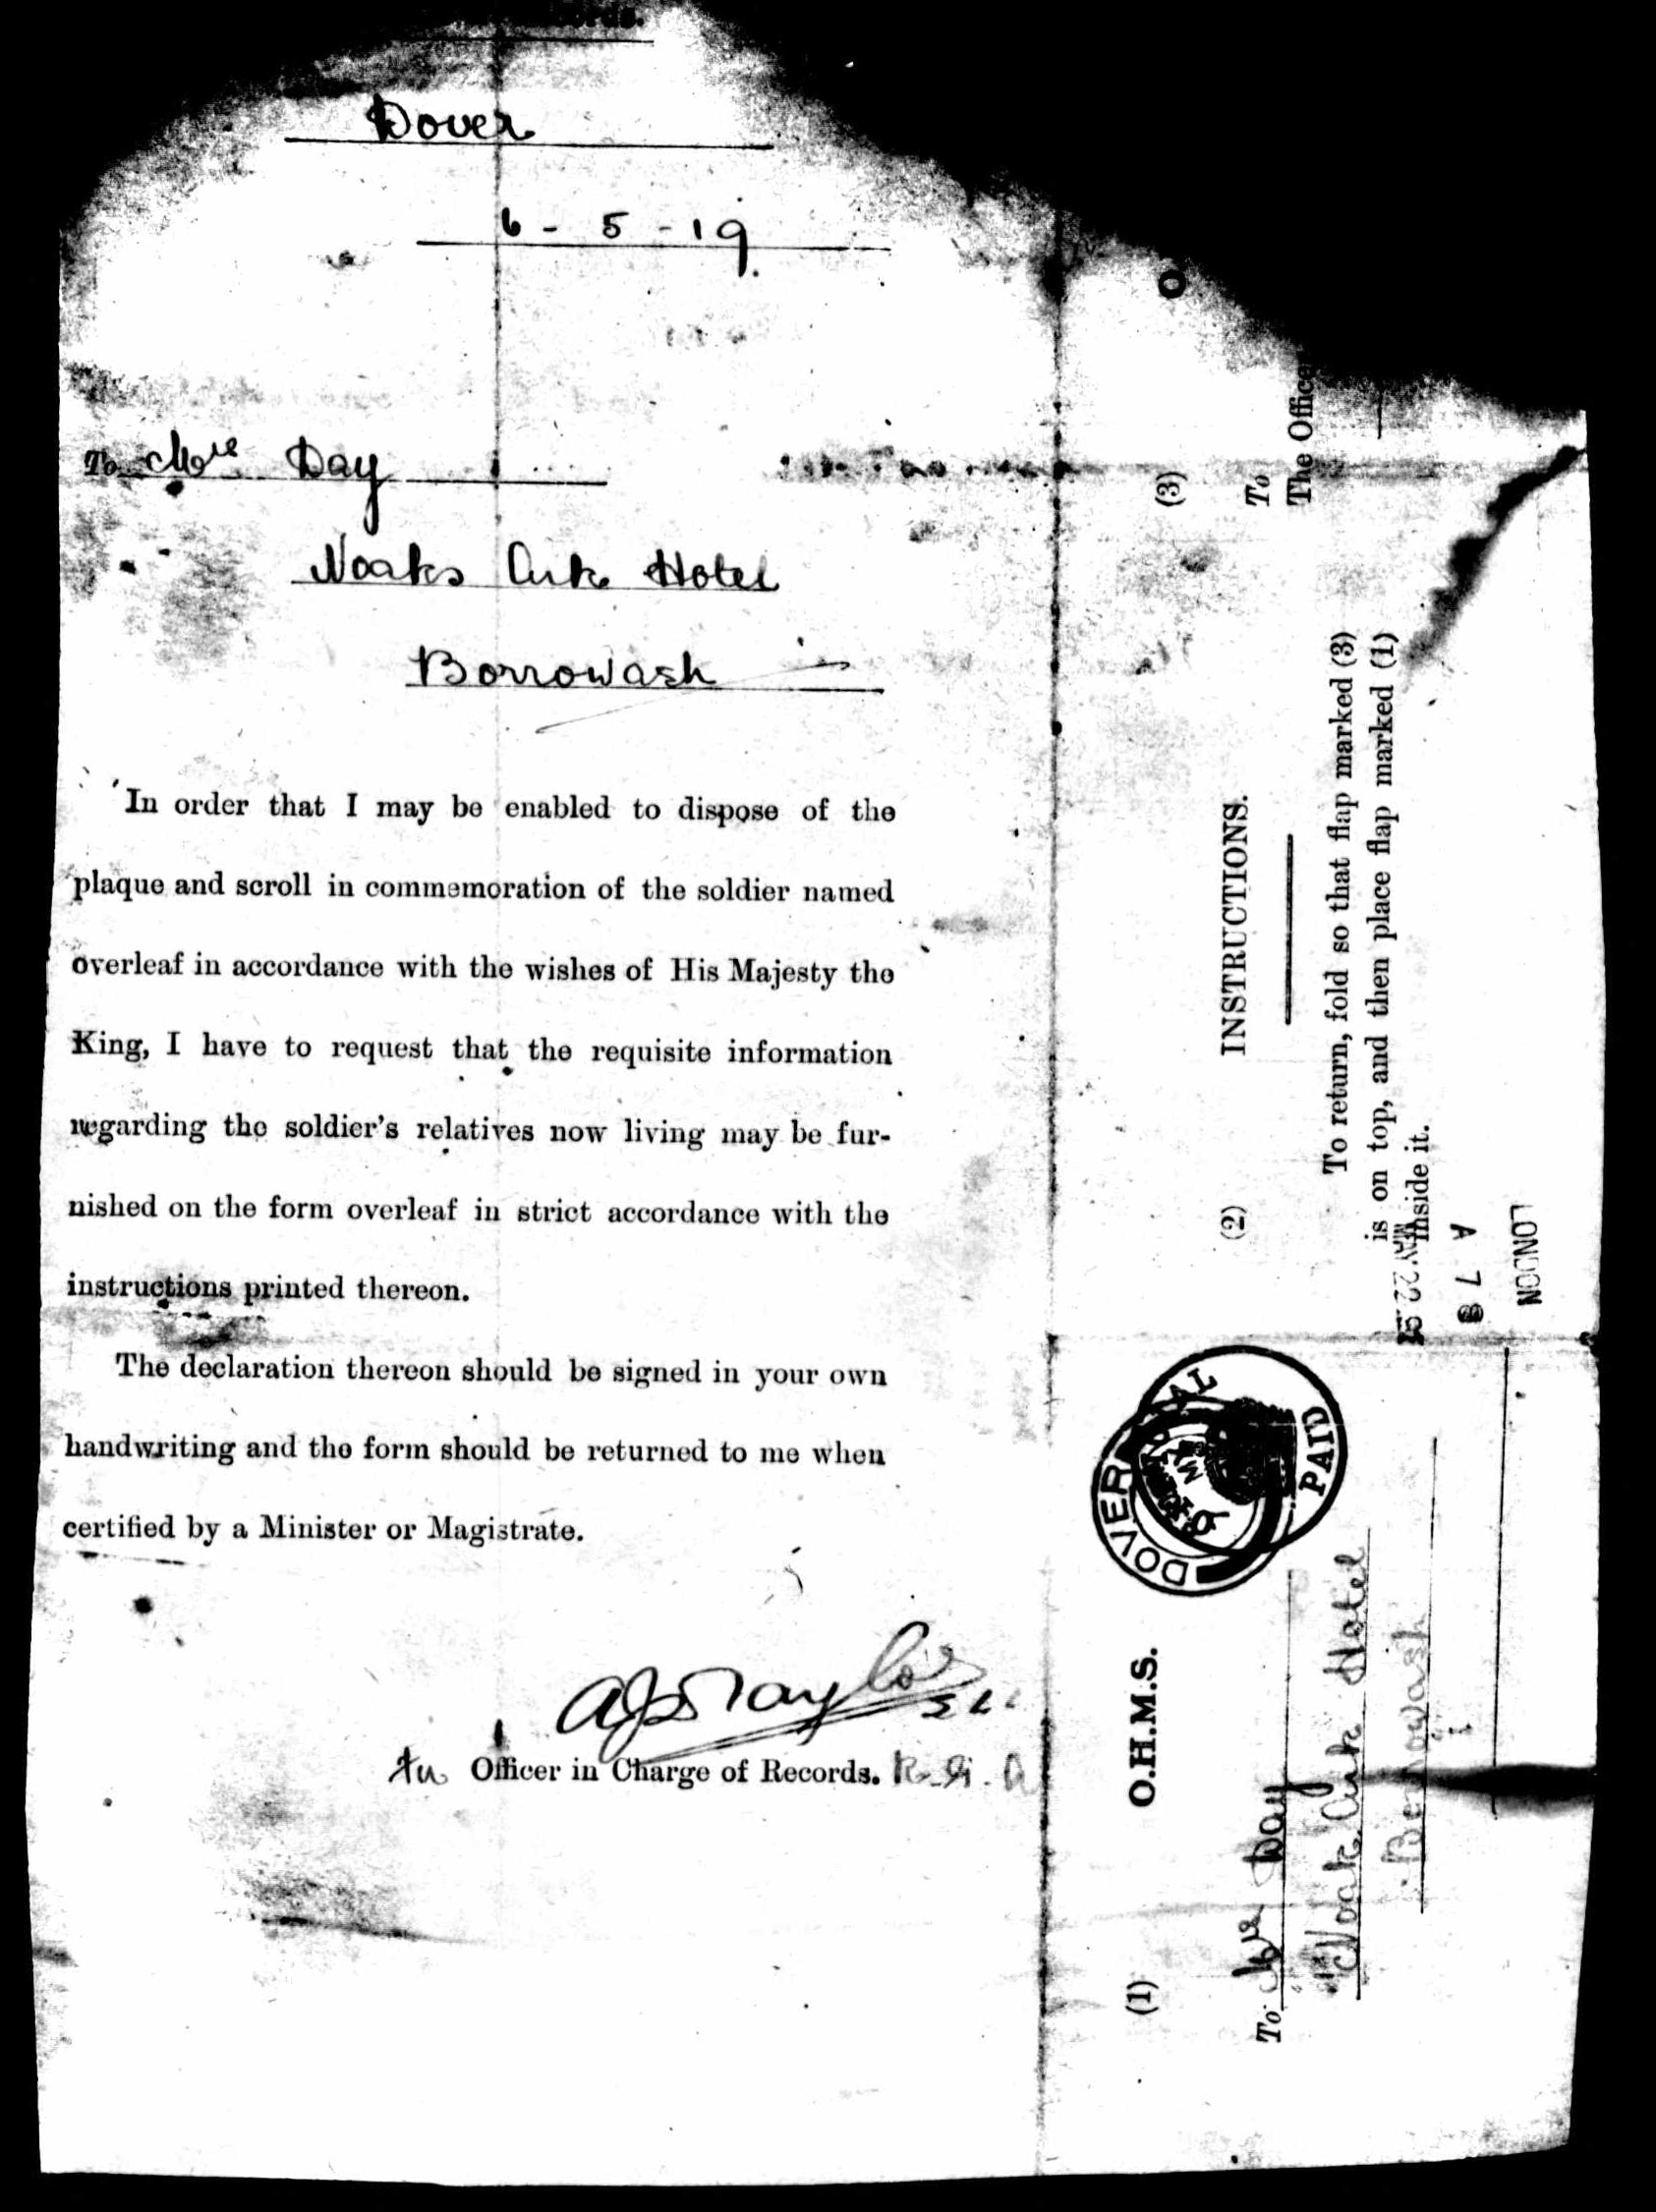 1916-1917 - Day, Walter Sidney - Service Record - MIUK1914H_132377-00479